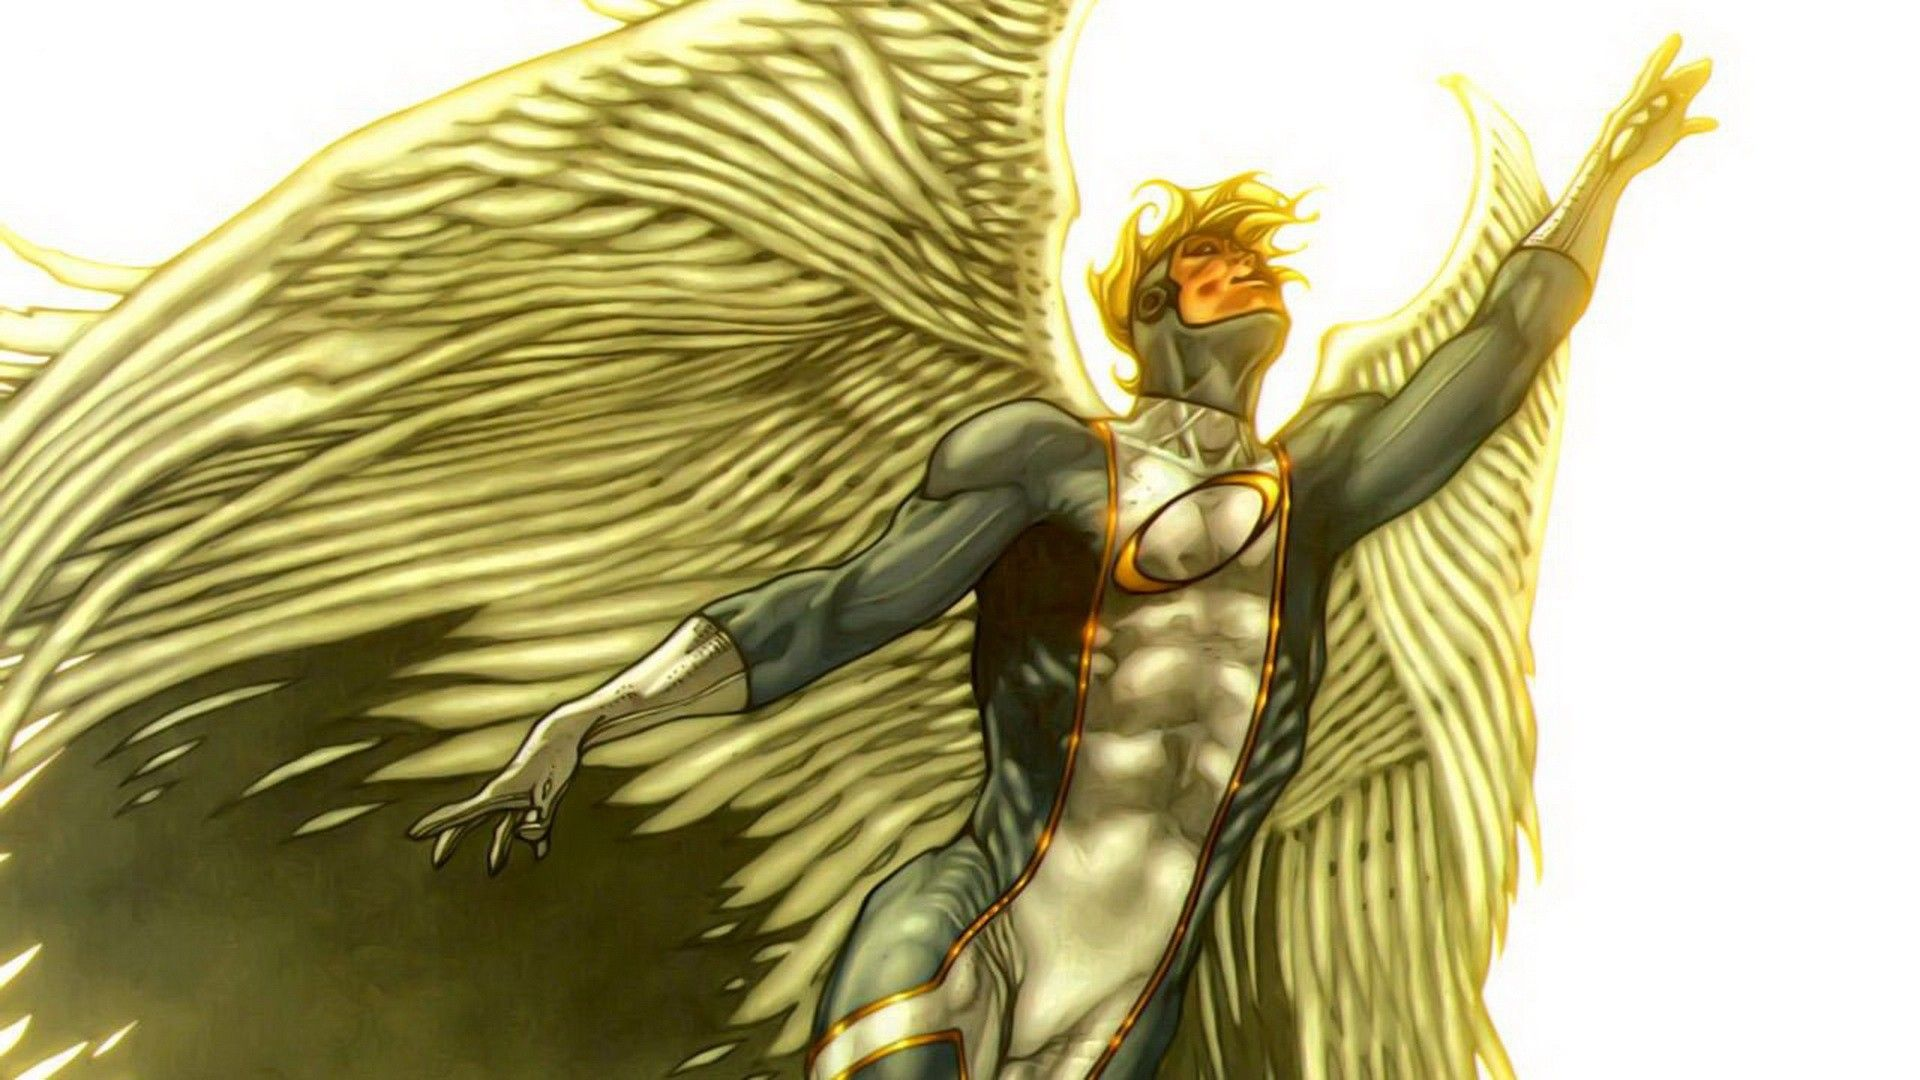 x men apocalypse image provides a first look at angel concept art